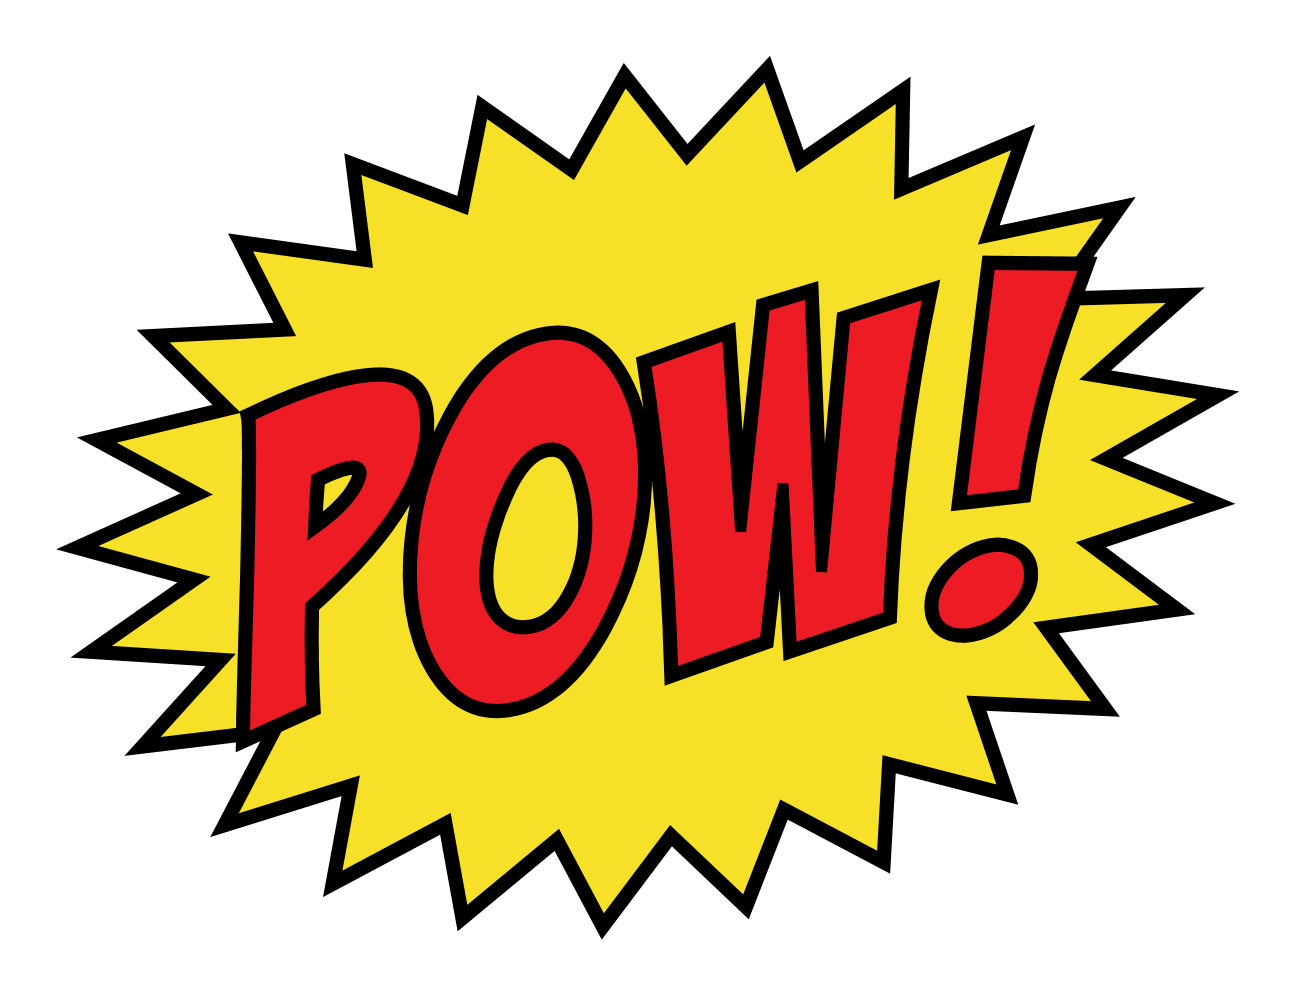 15 pow super hero sign free cliparts that you can download chemistry clip art for teachers chemistry clip art for teachers